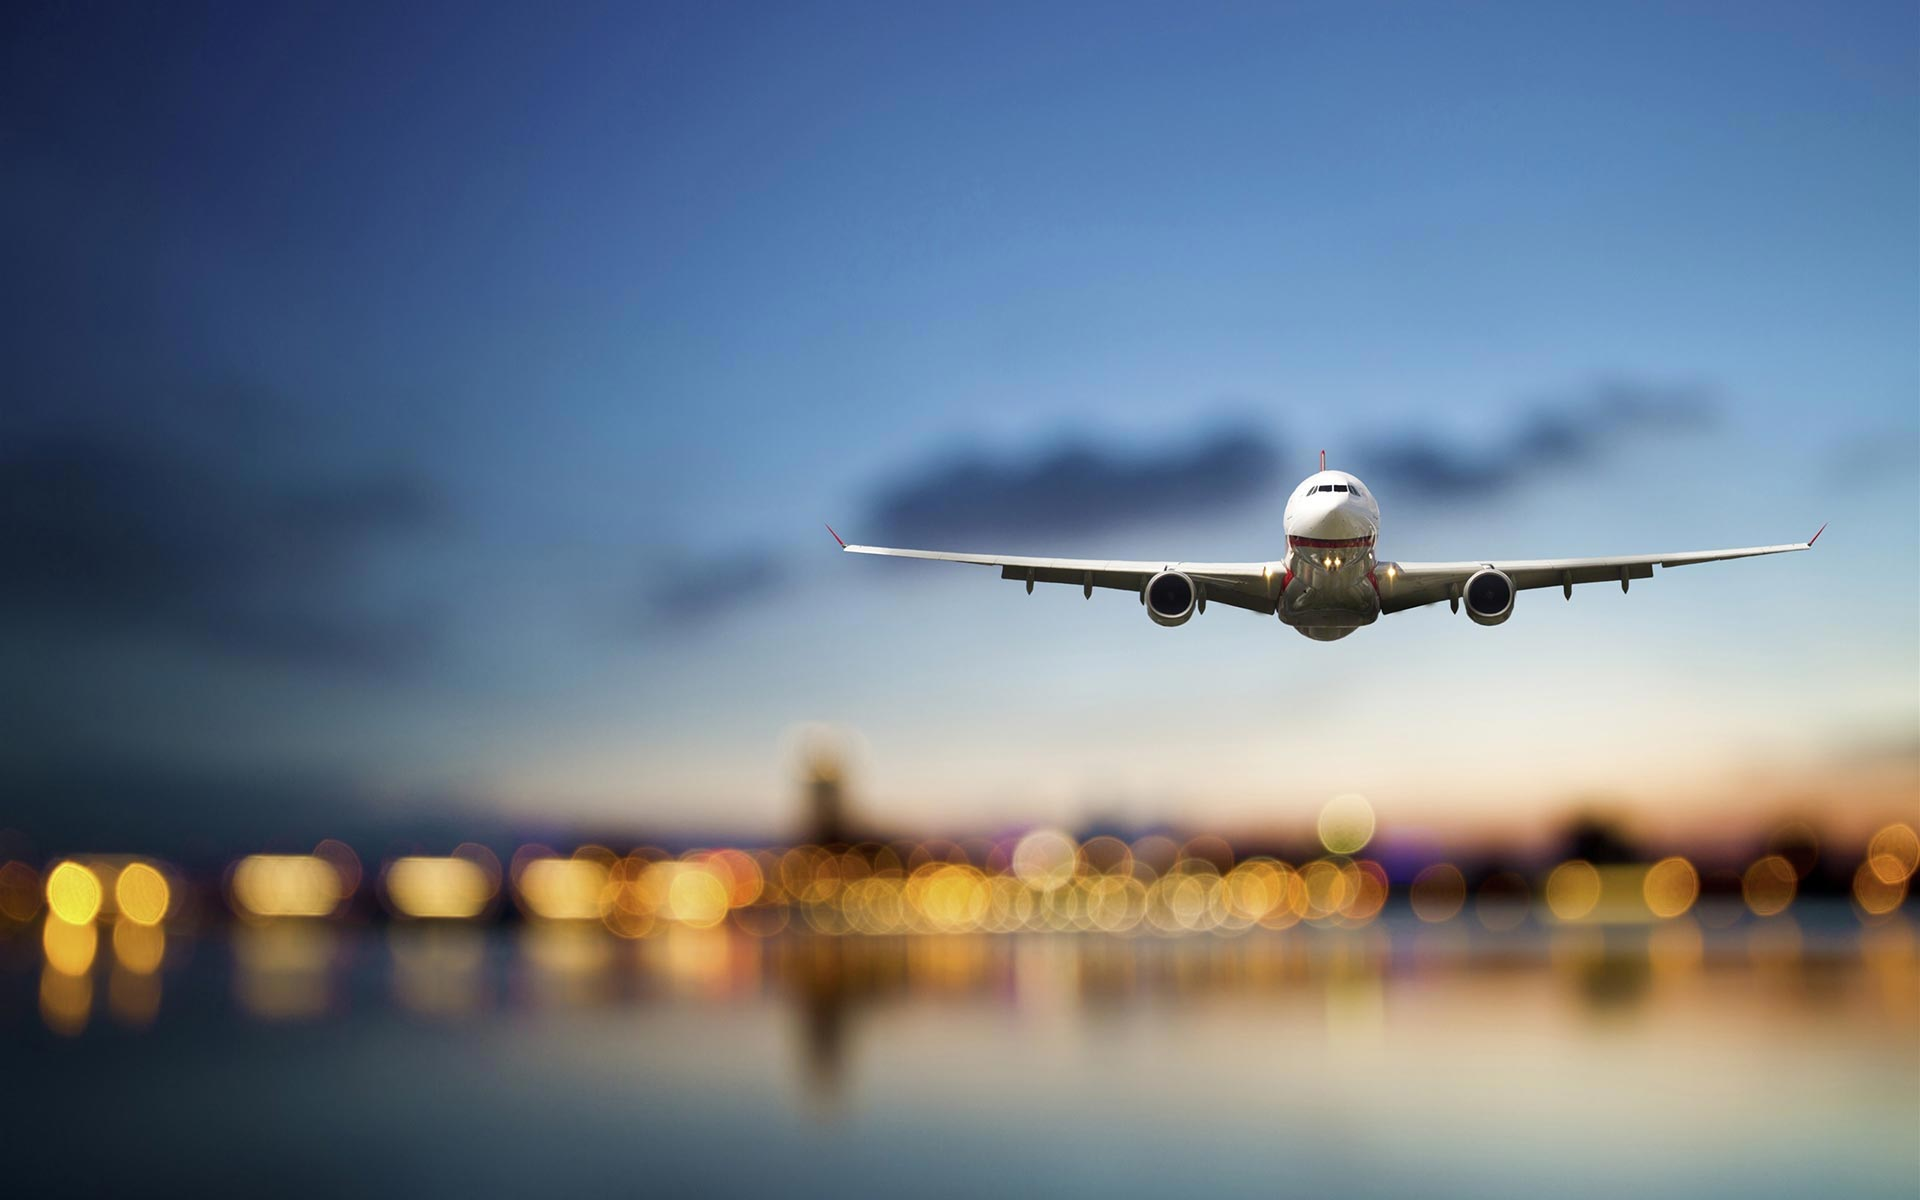 Airplane approching runway as background image